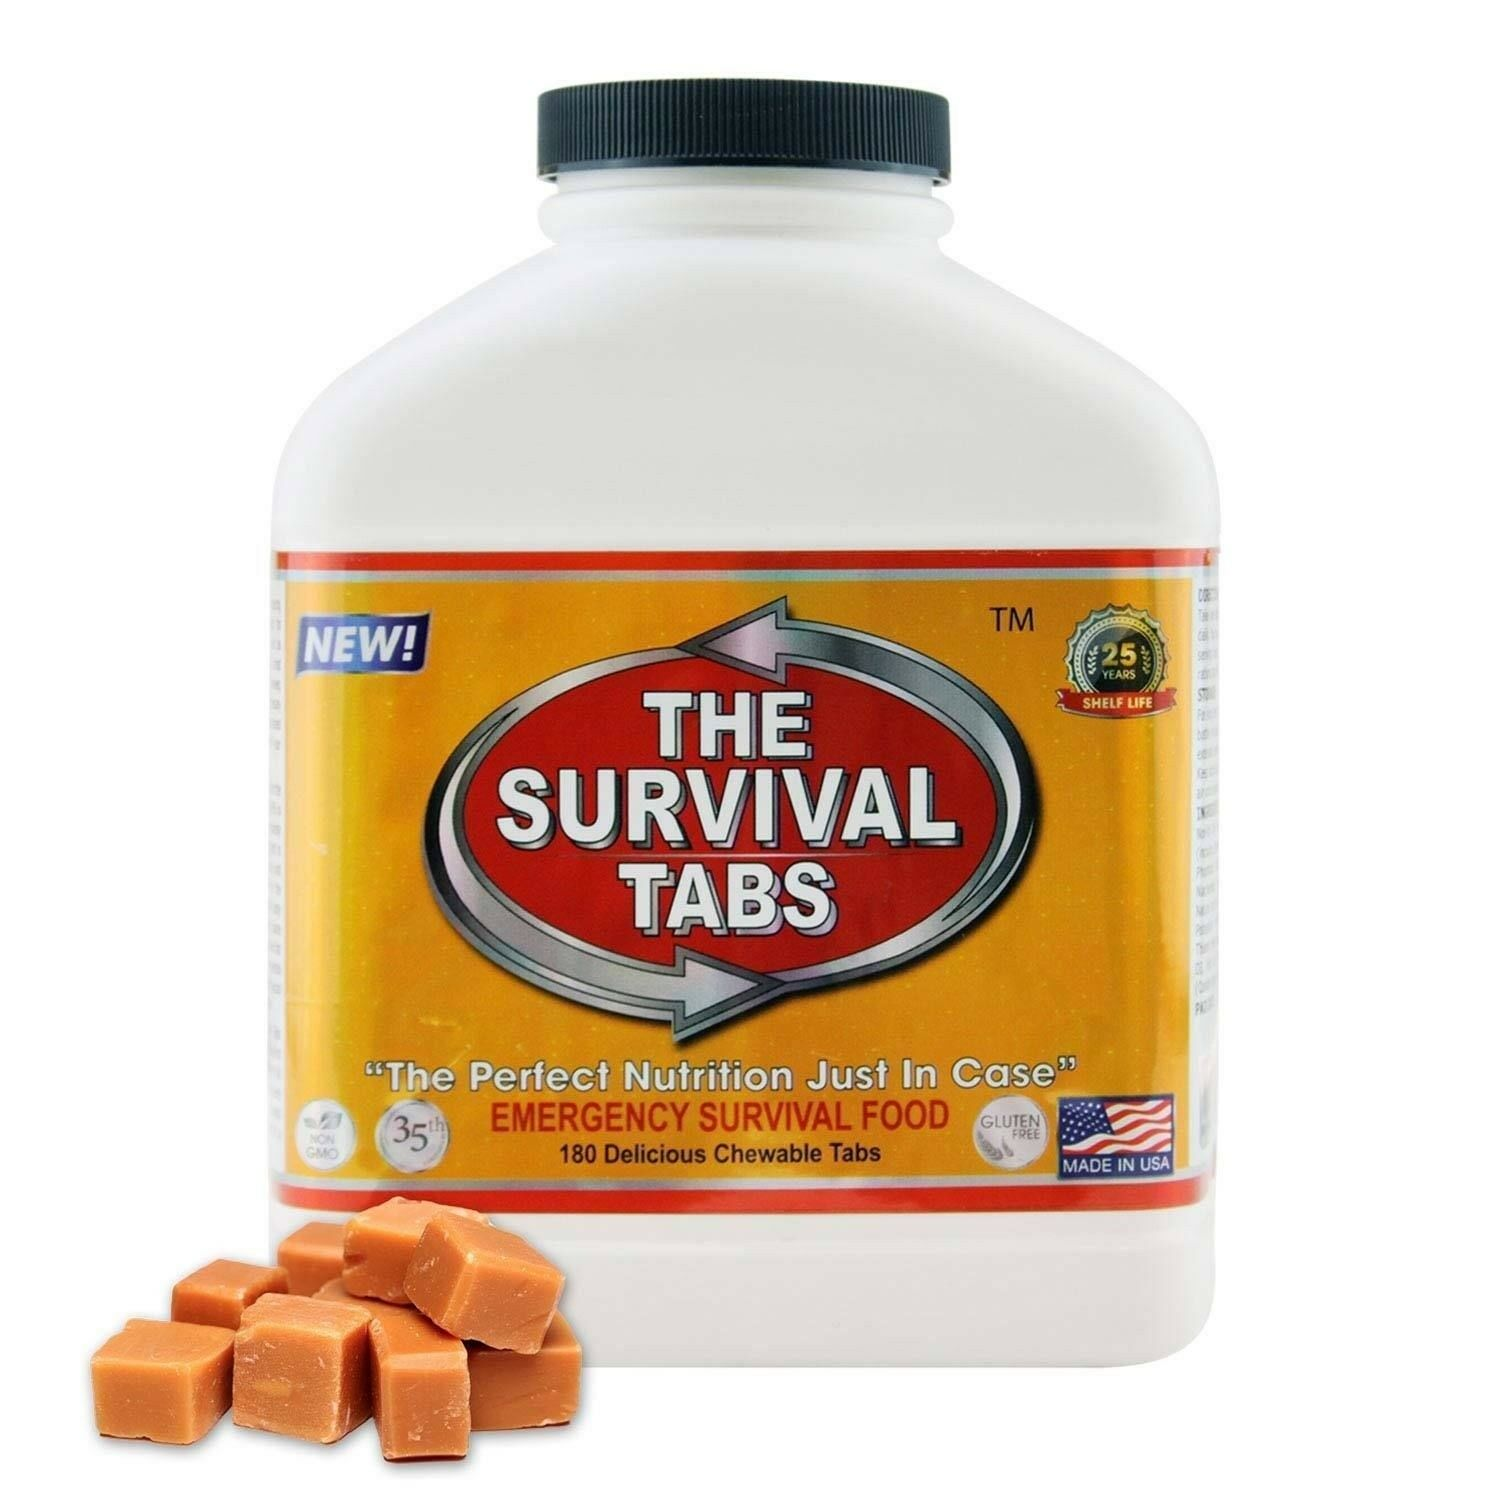 NEW Survival Tabs 180 Butterscotch Flavor  Hurricane Emergency Preparation Food  selling well all over the world